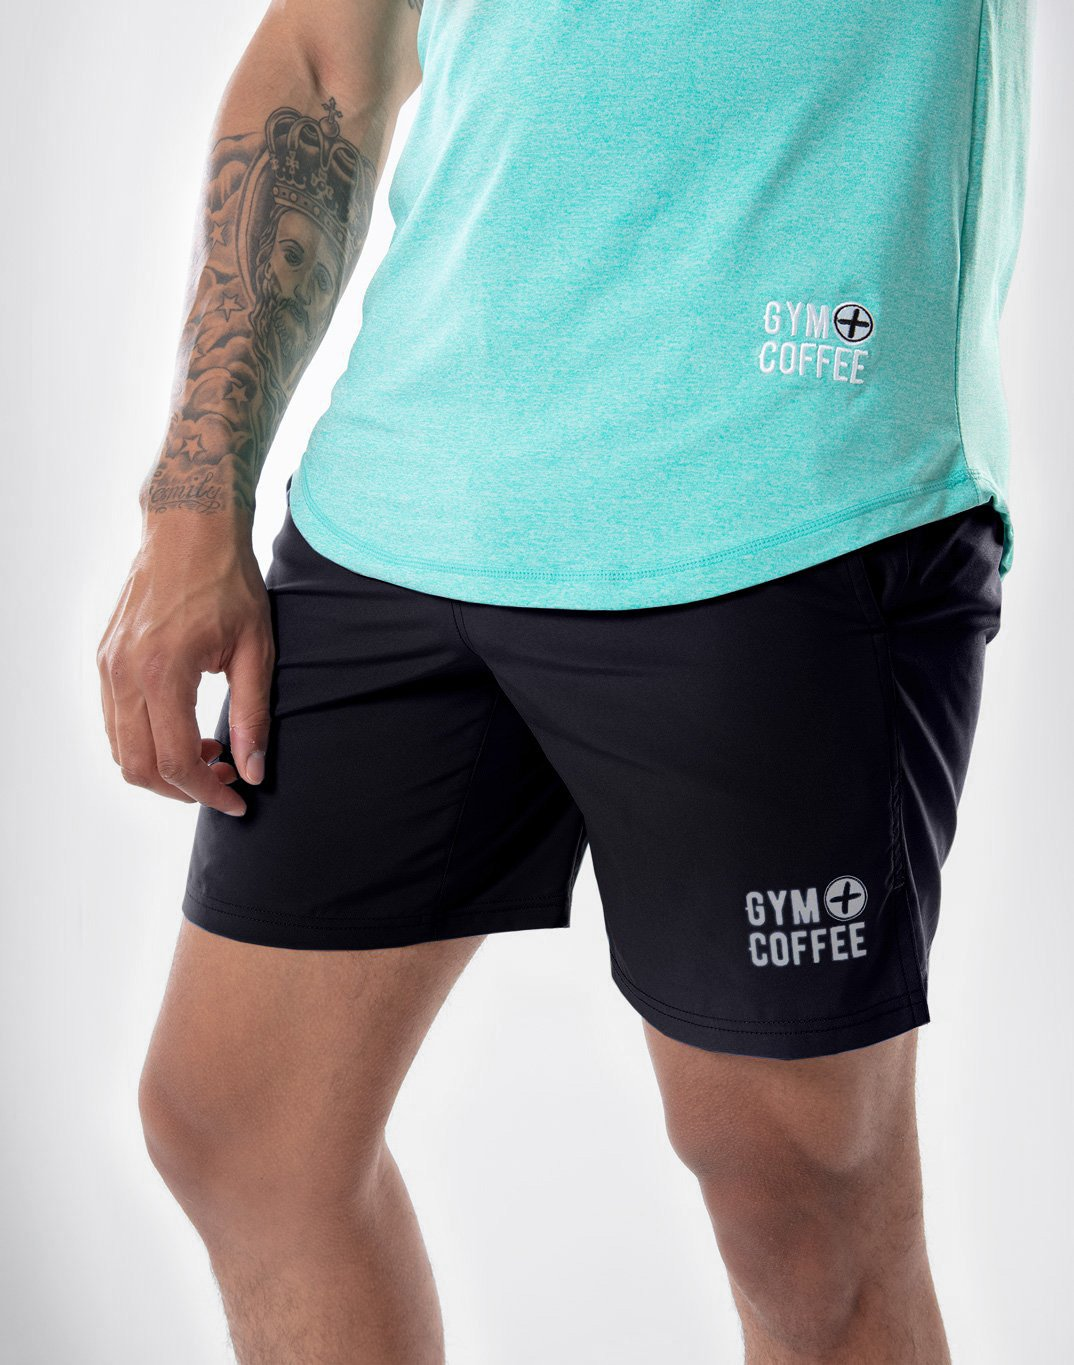 "Gym Plus Coffee Shorts Daybreak Shorts 7"" in Black Designed in Ireland"